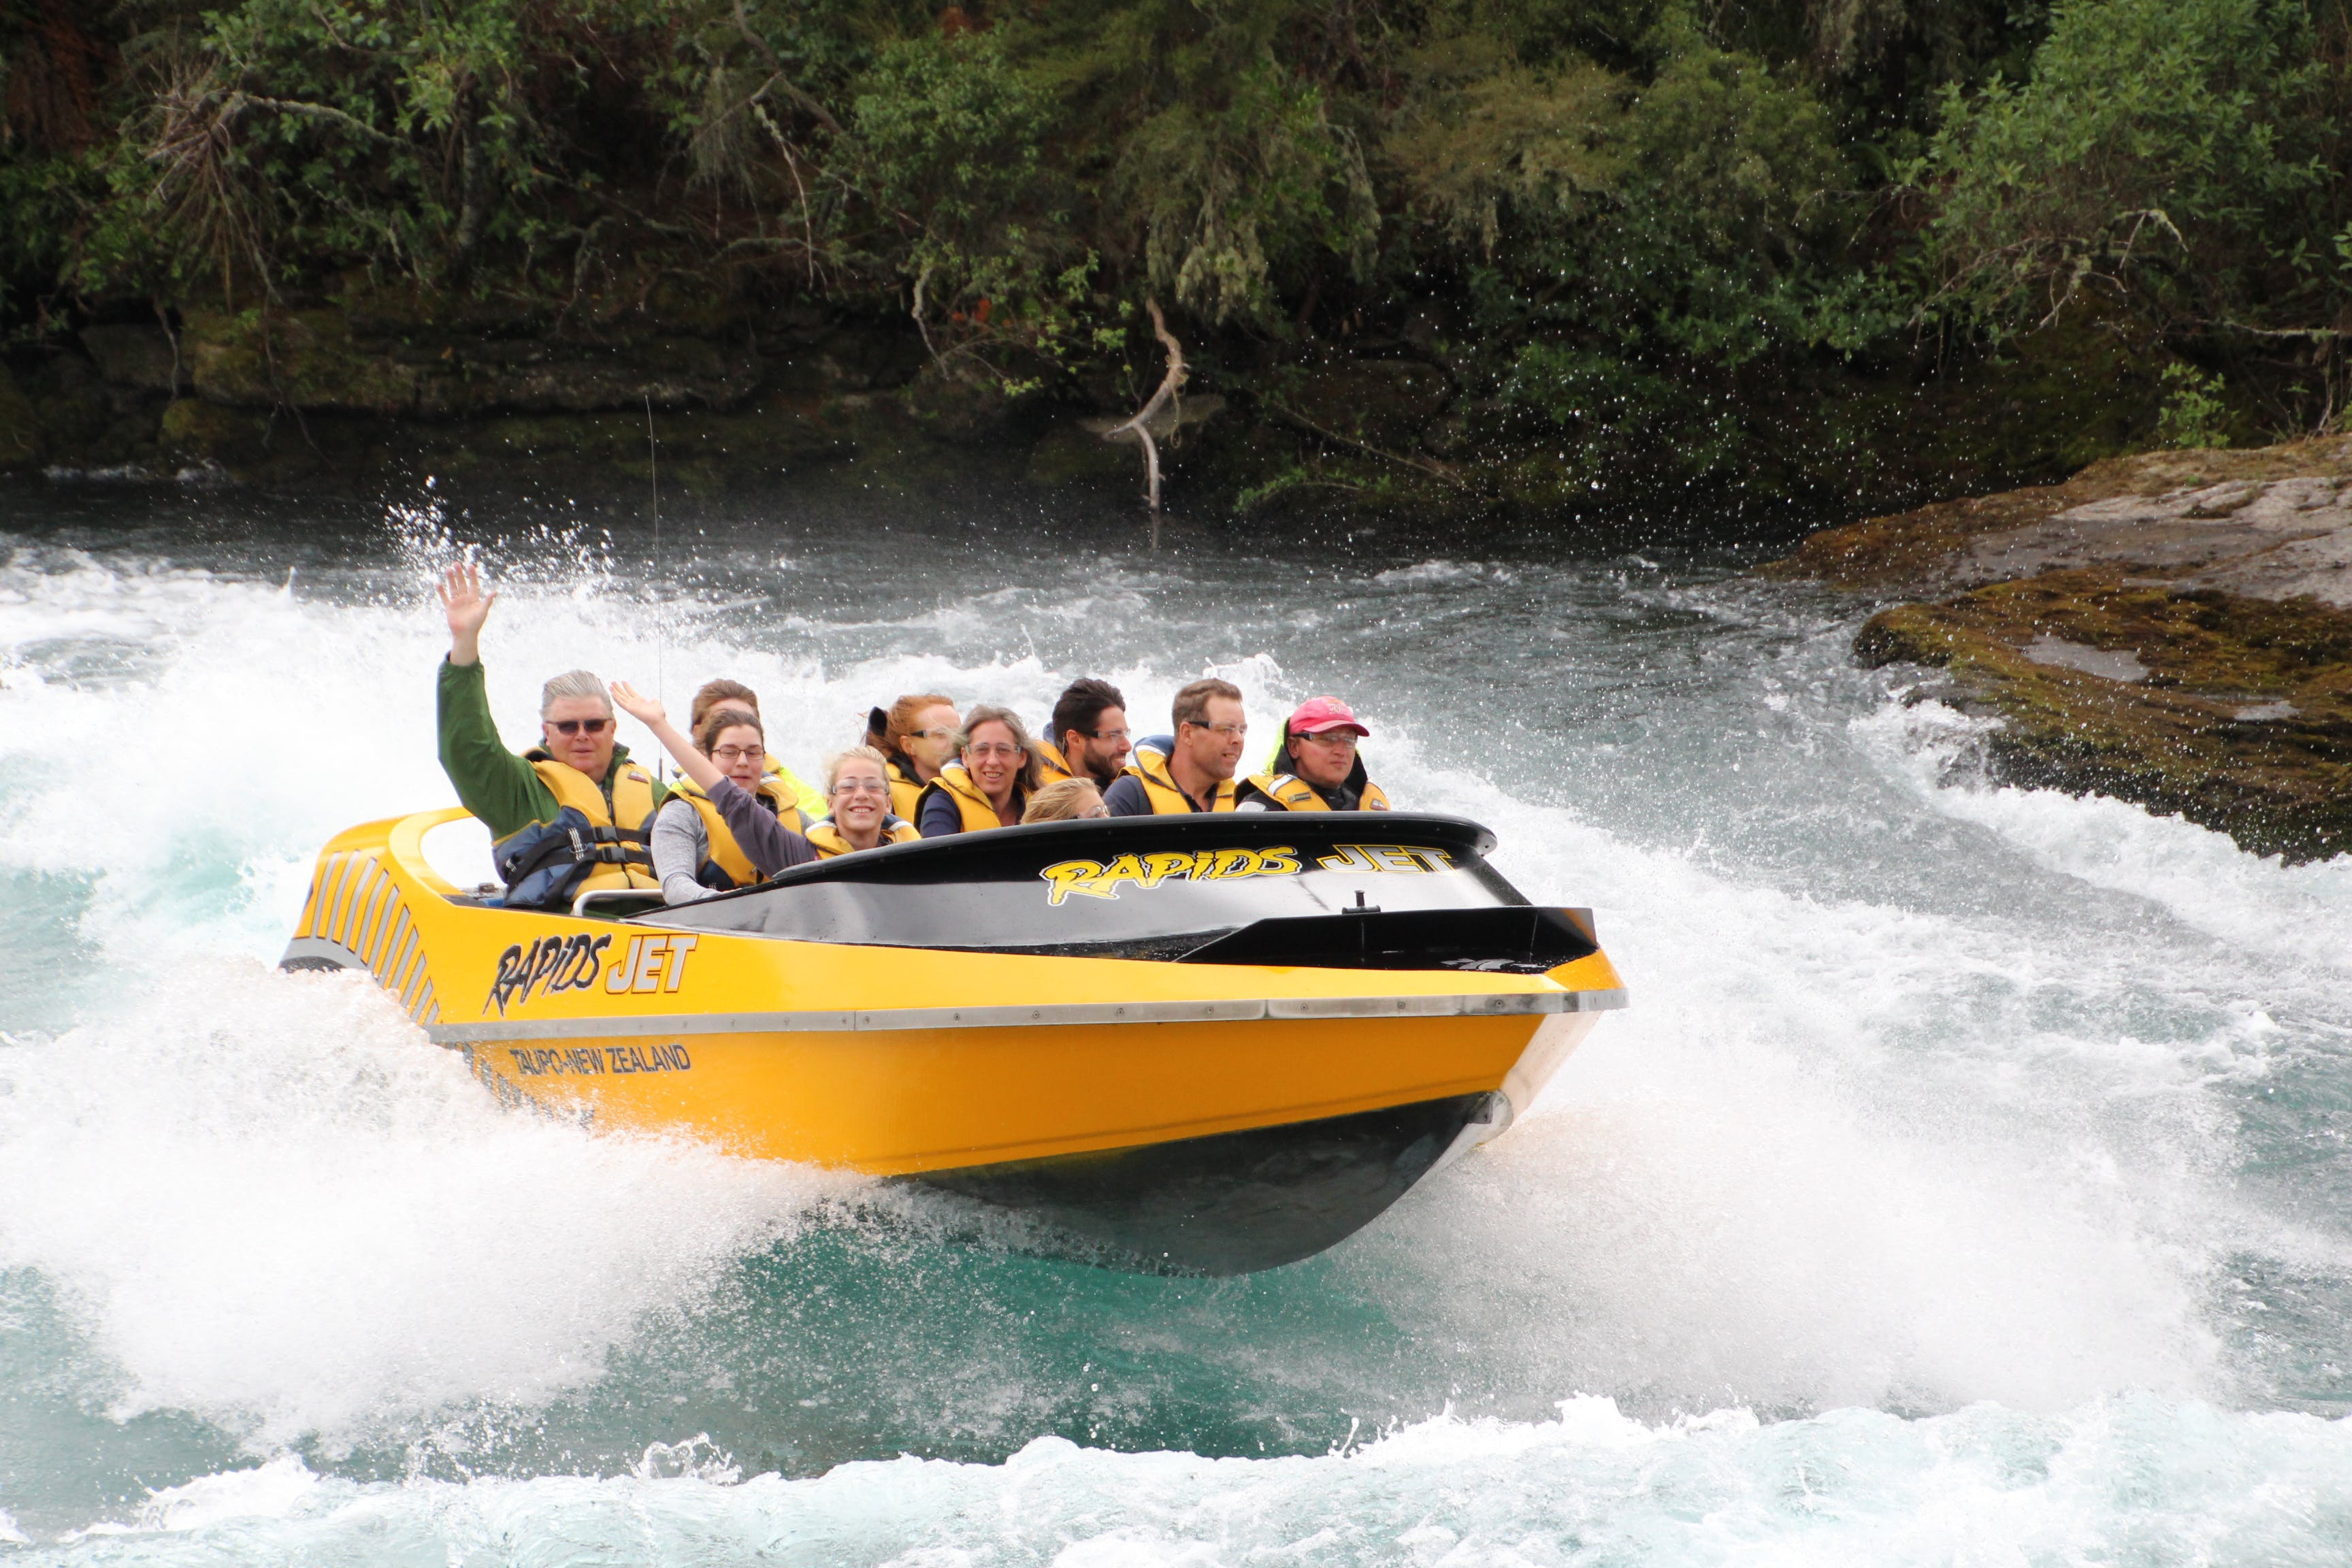 owner of chalet eiger waves from Rapids Jet